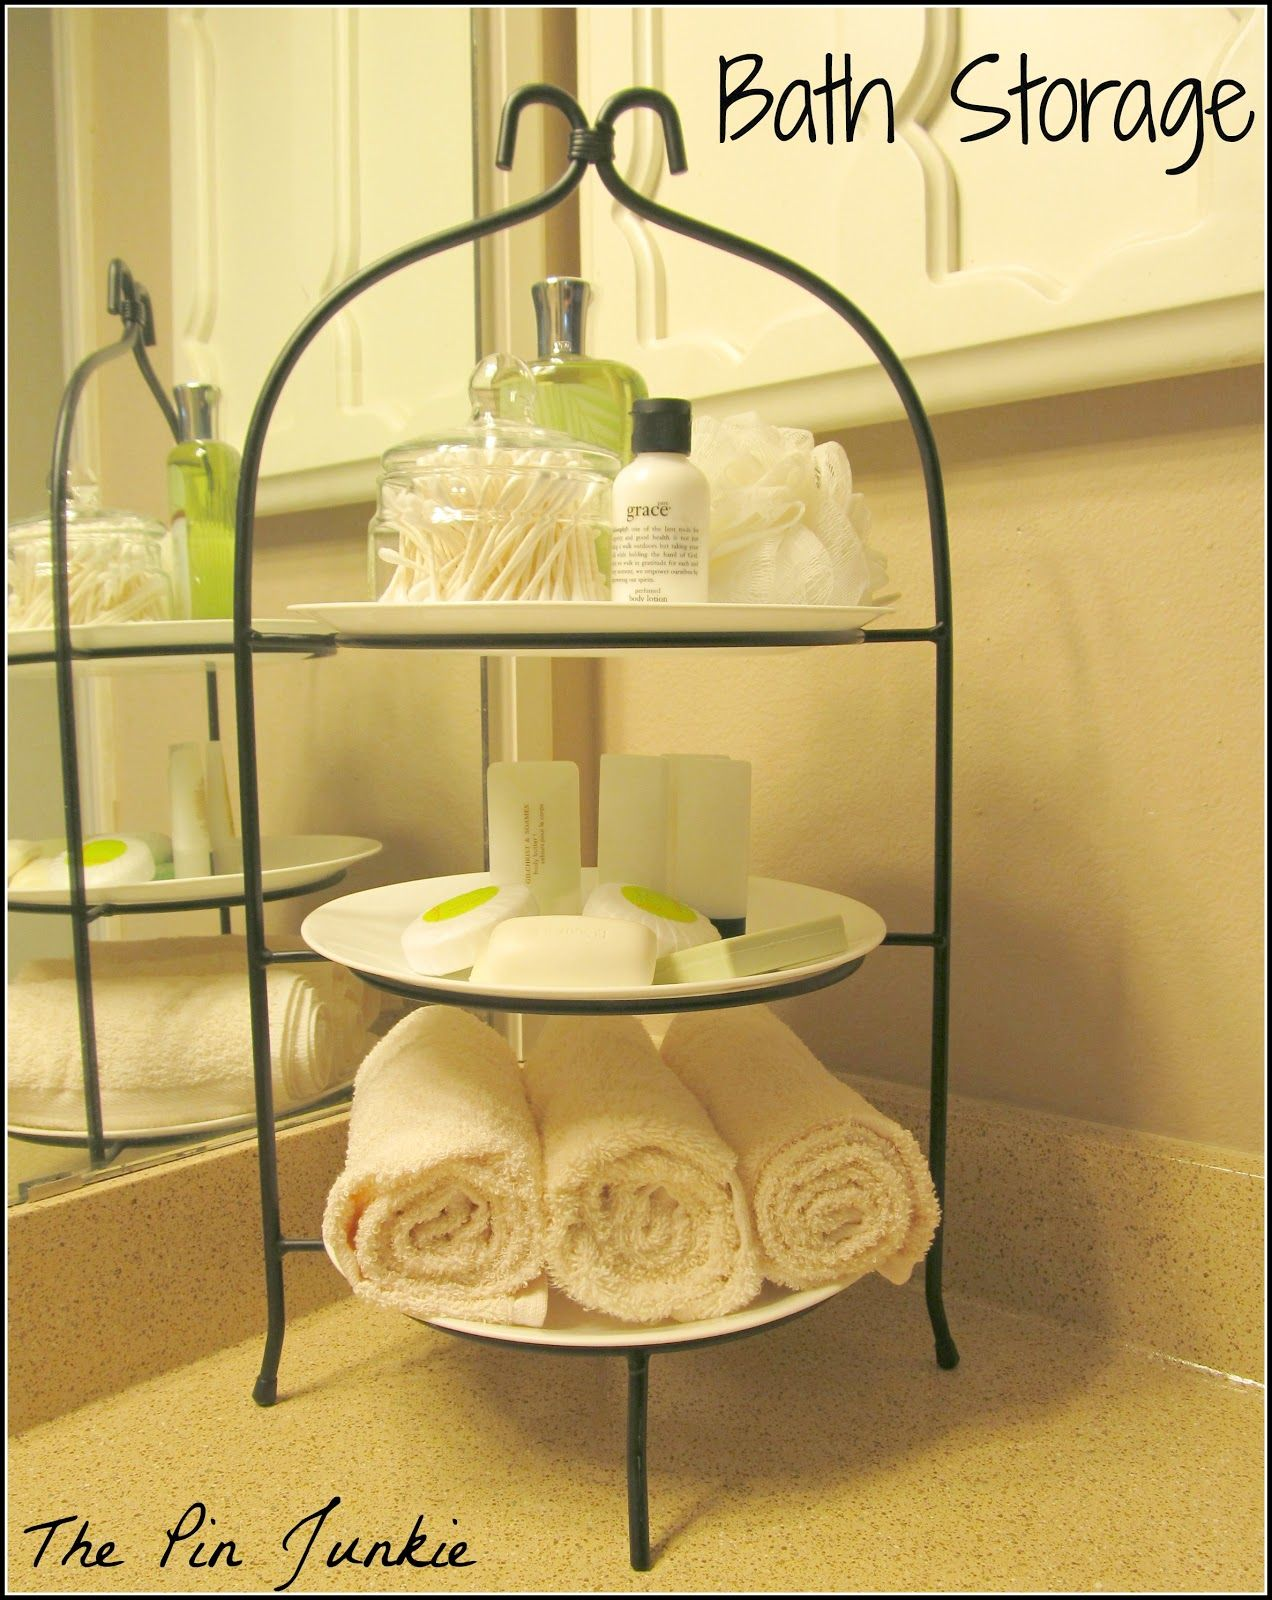 Bathroom Storage | Bathroom storage, Plate stands and Storage